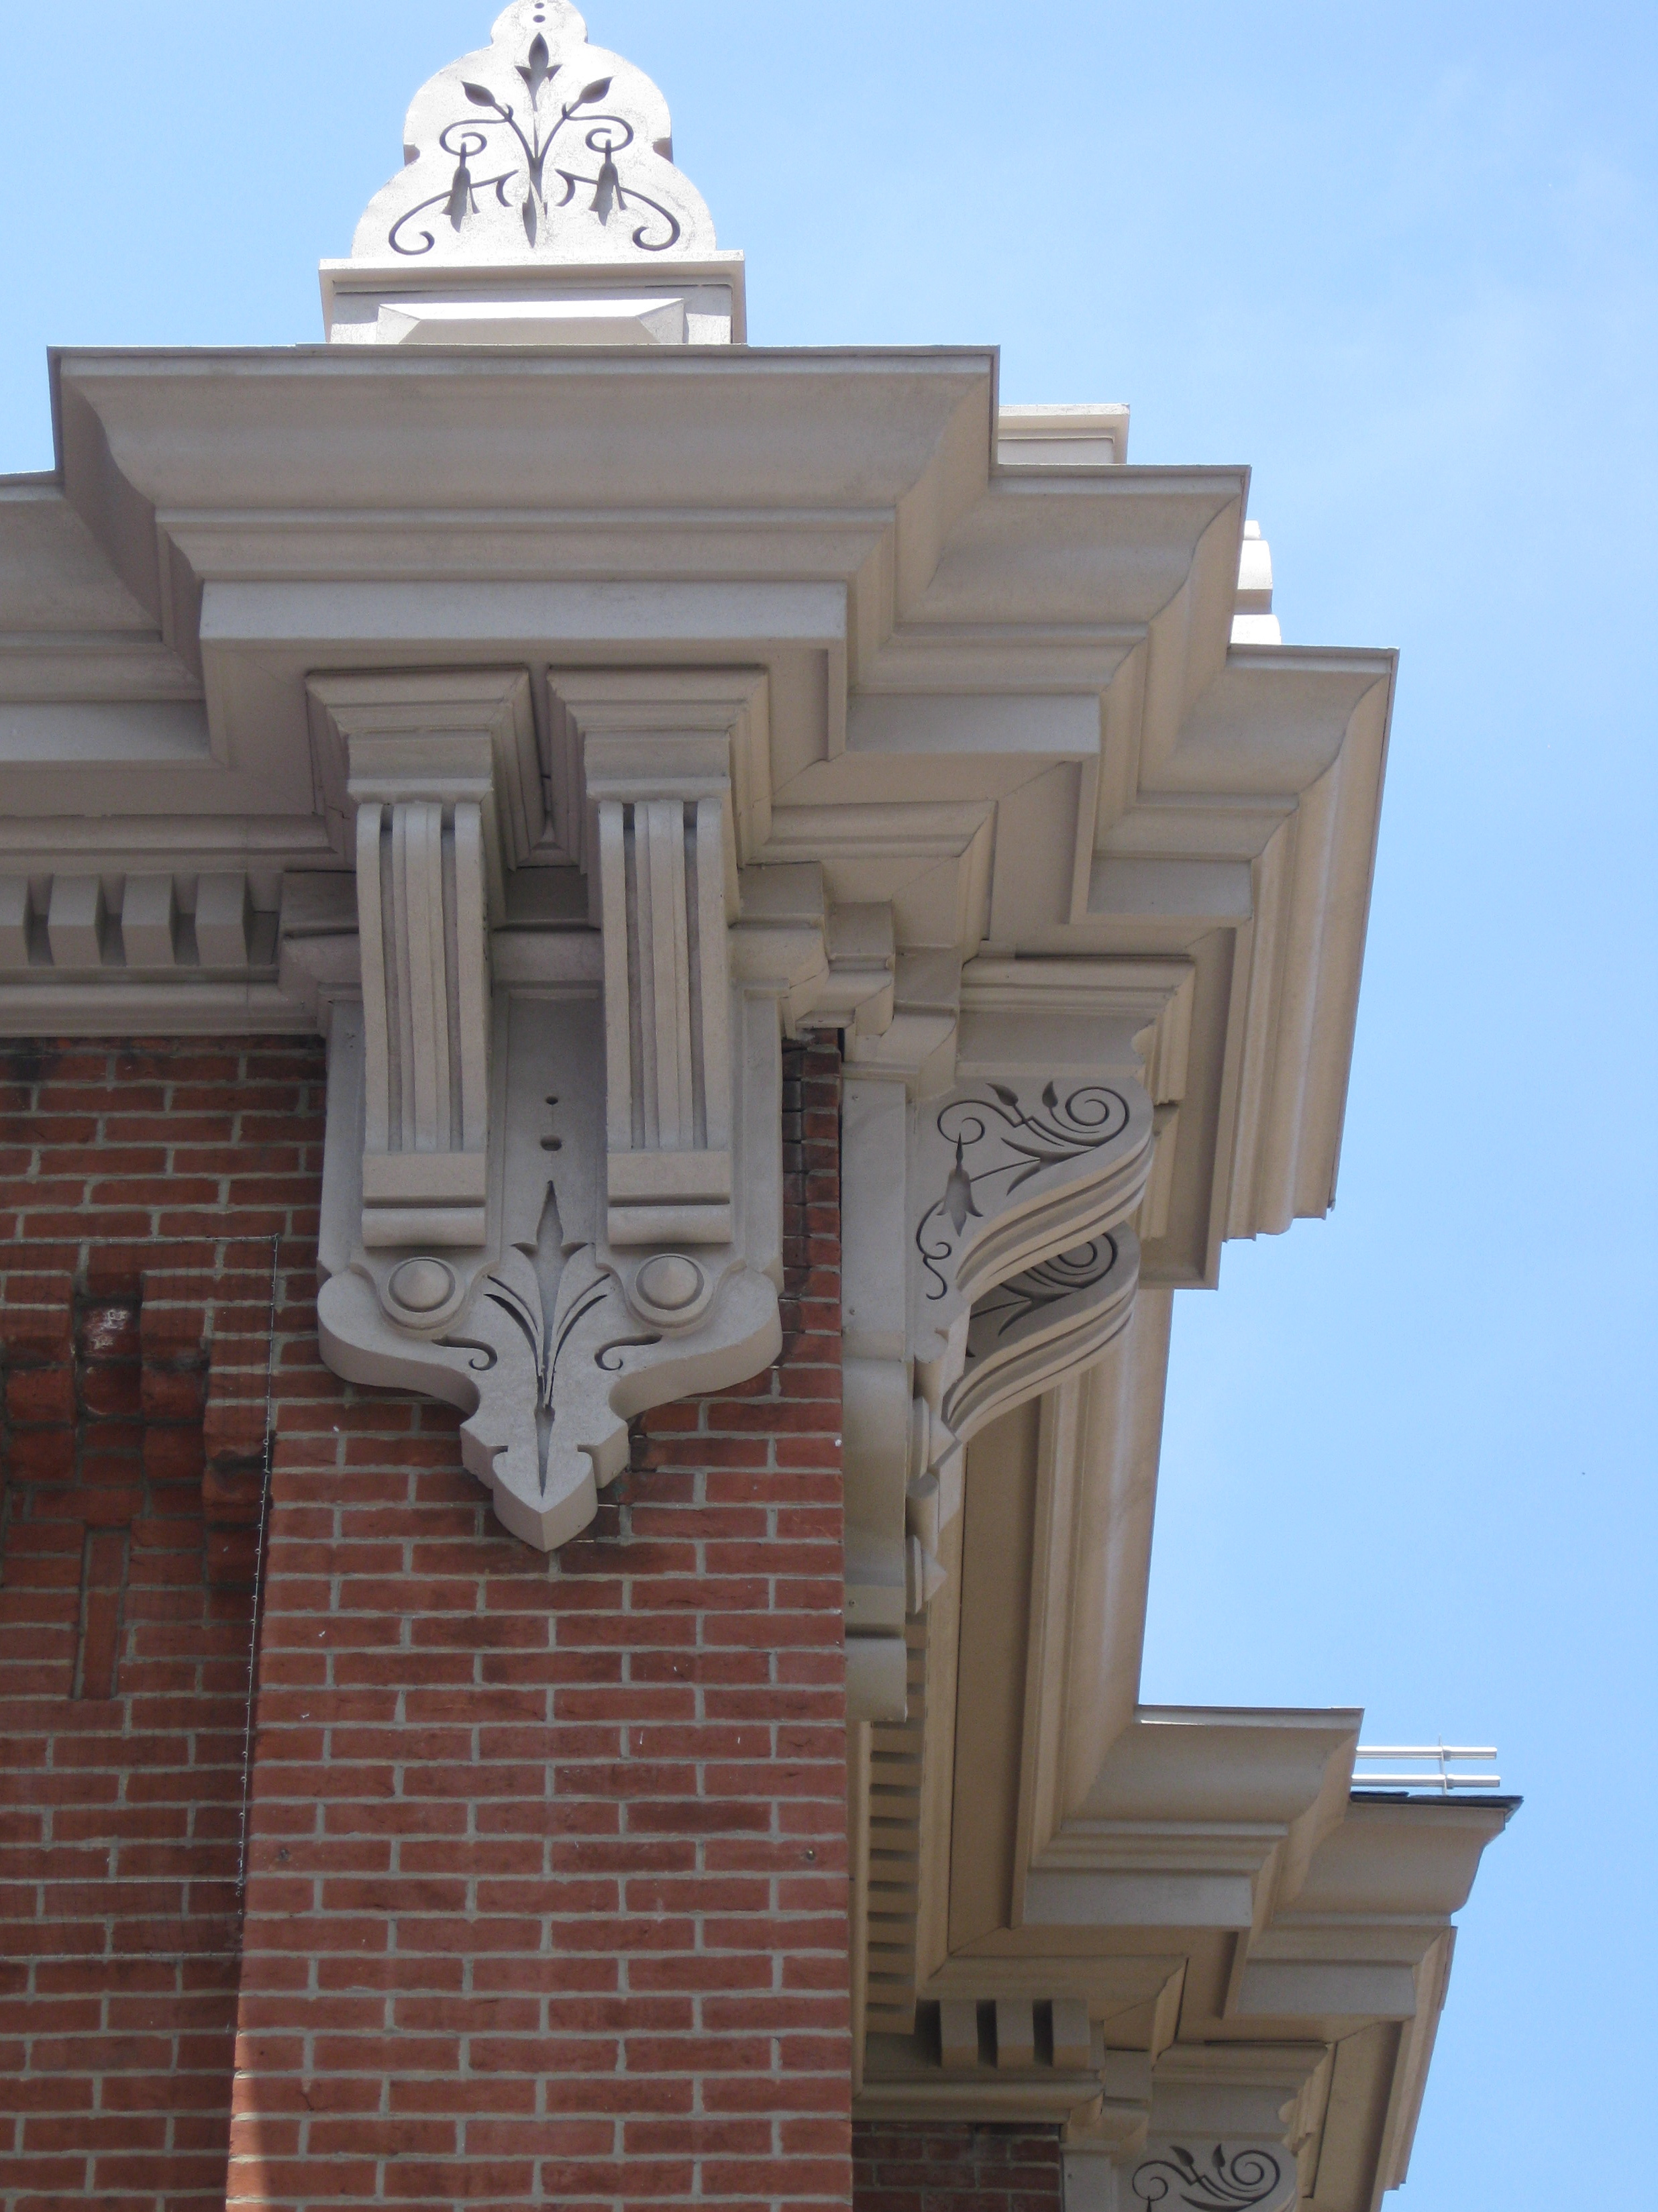 June 7: Eastern Market is re-opening in a few weeks, and I noticed today that the cornices are looking all sorts of spiffy.